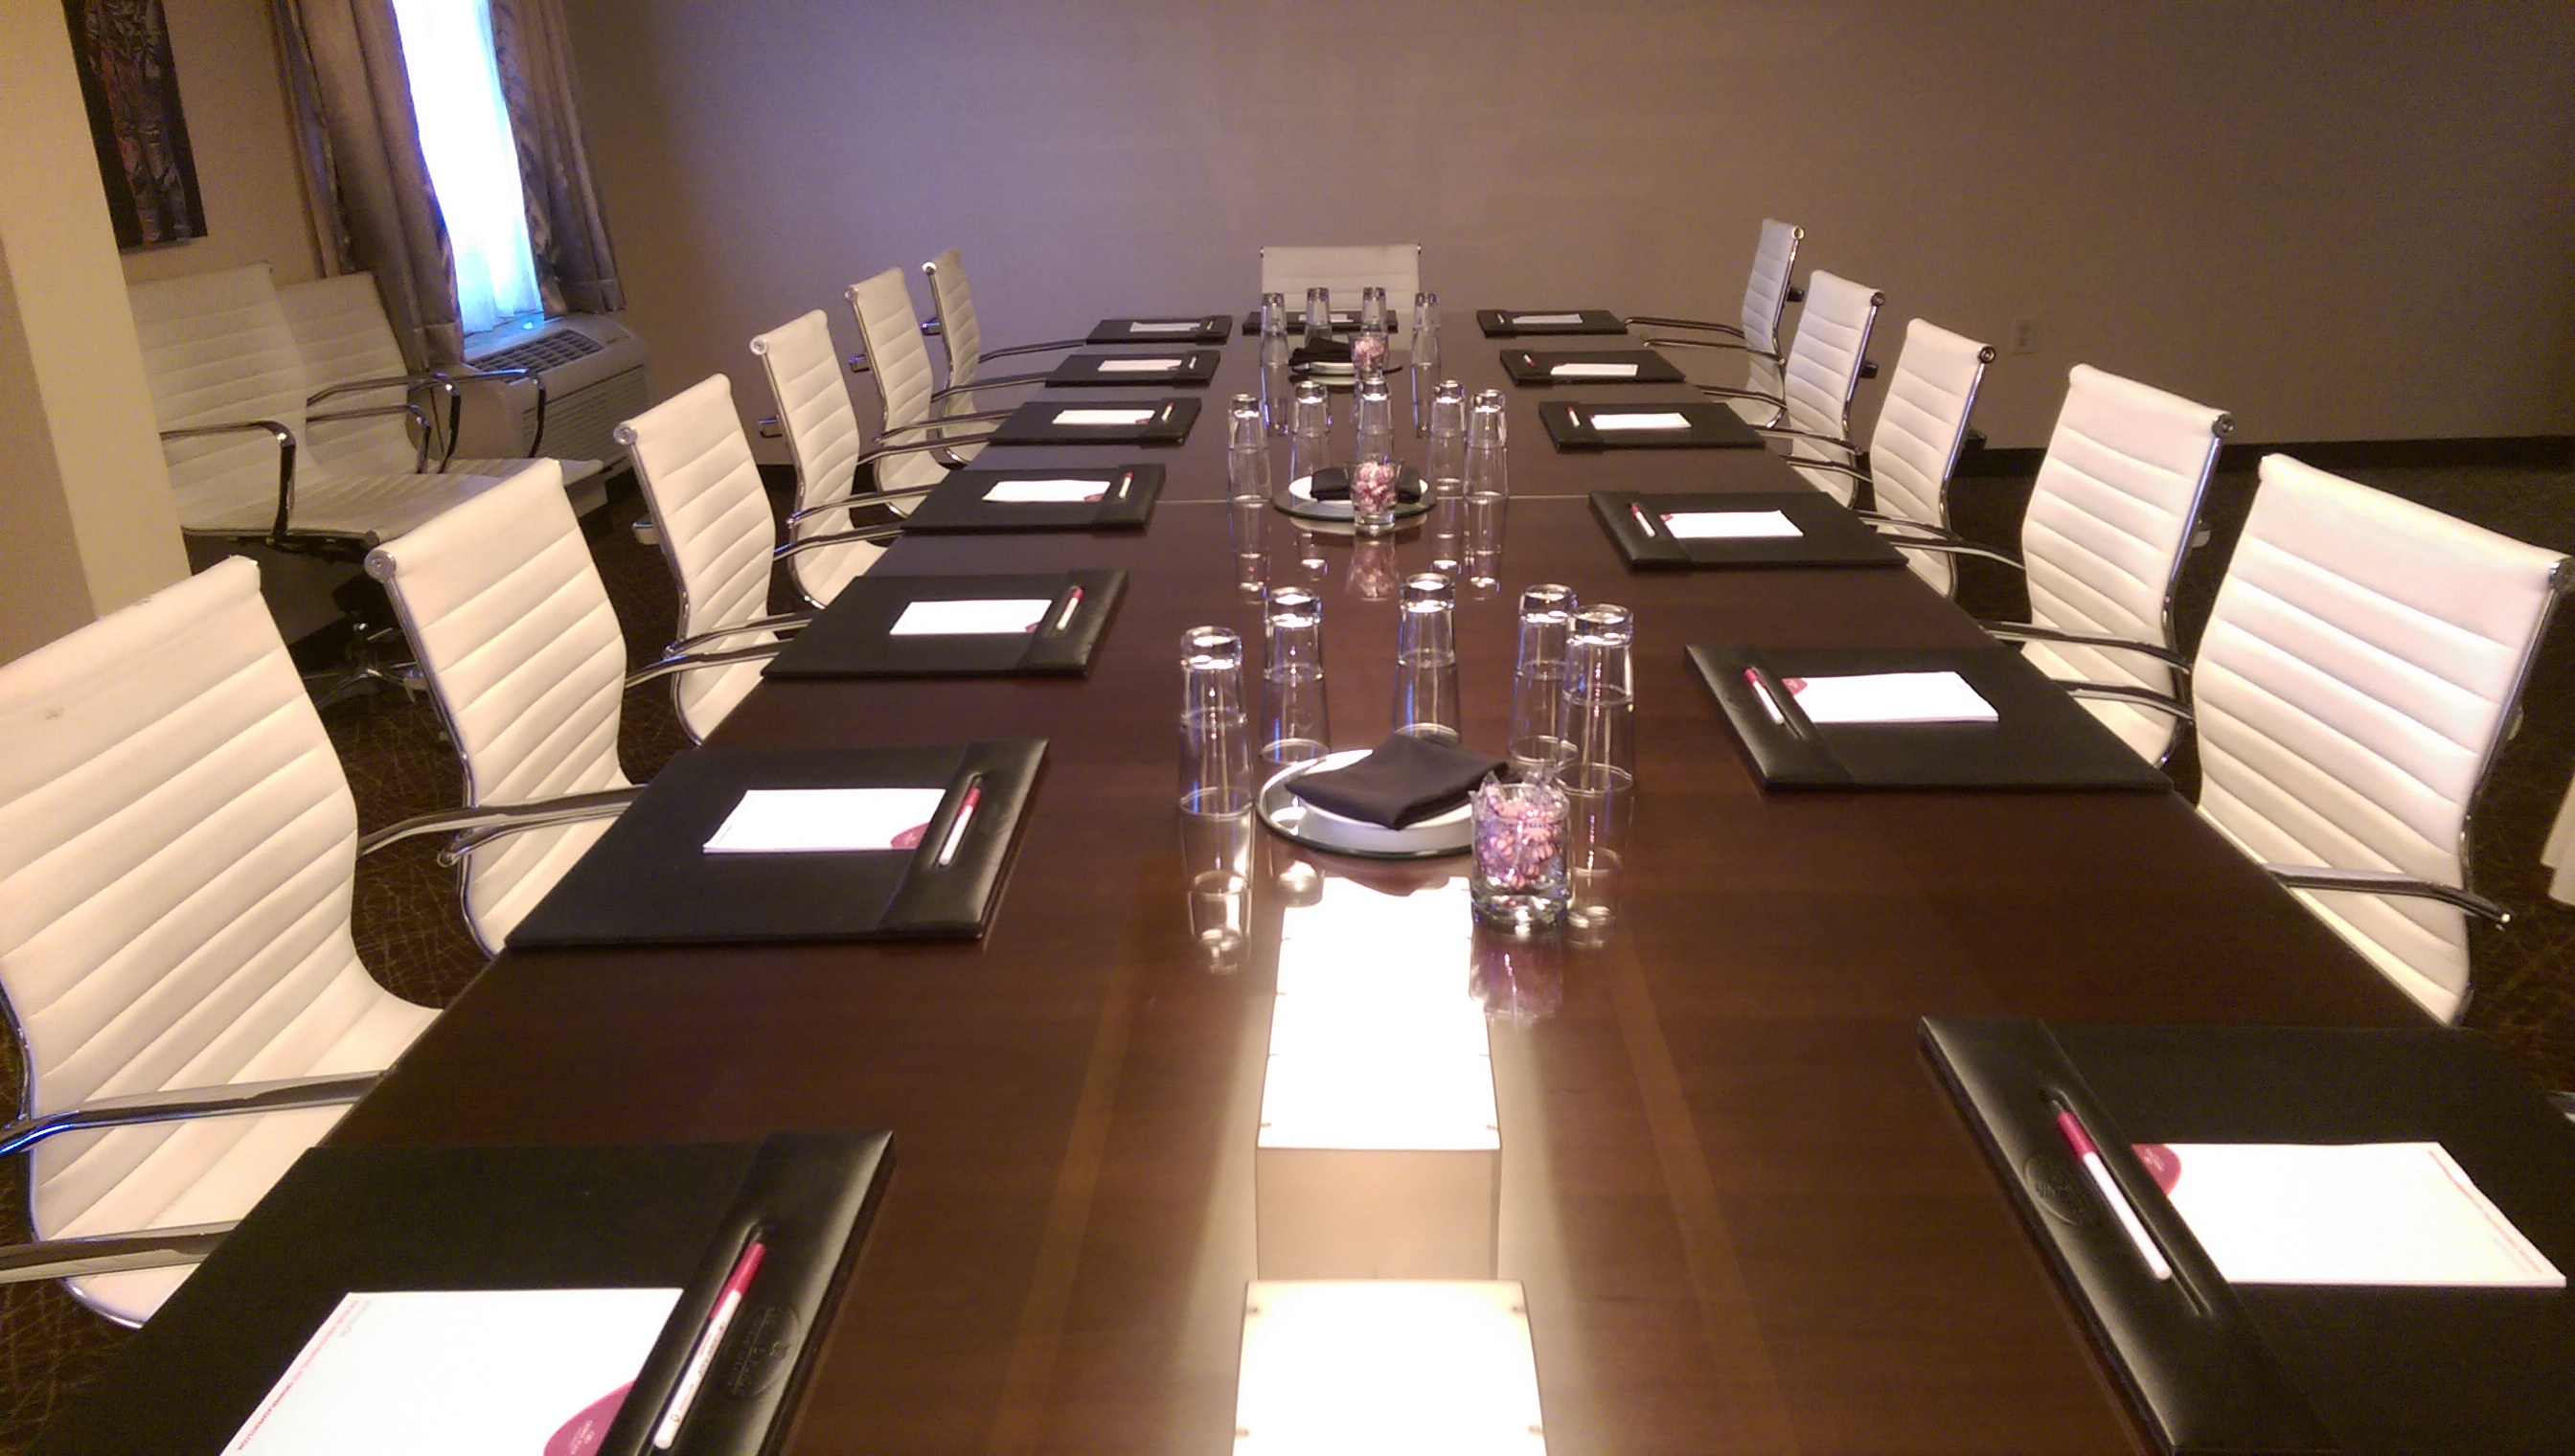 serpentine-mark-lund-conference-room-4